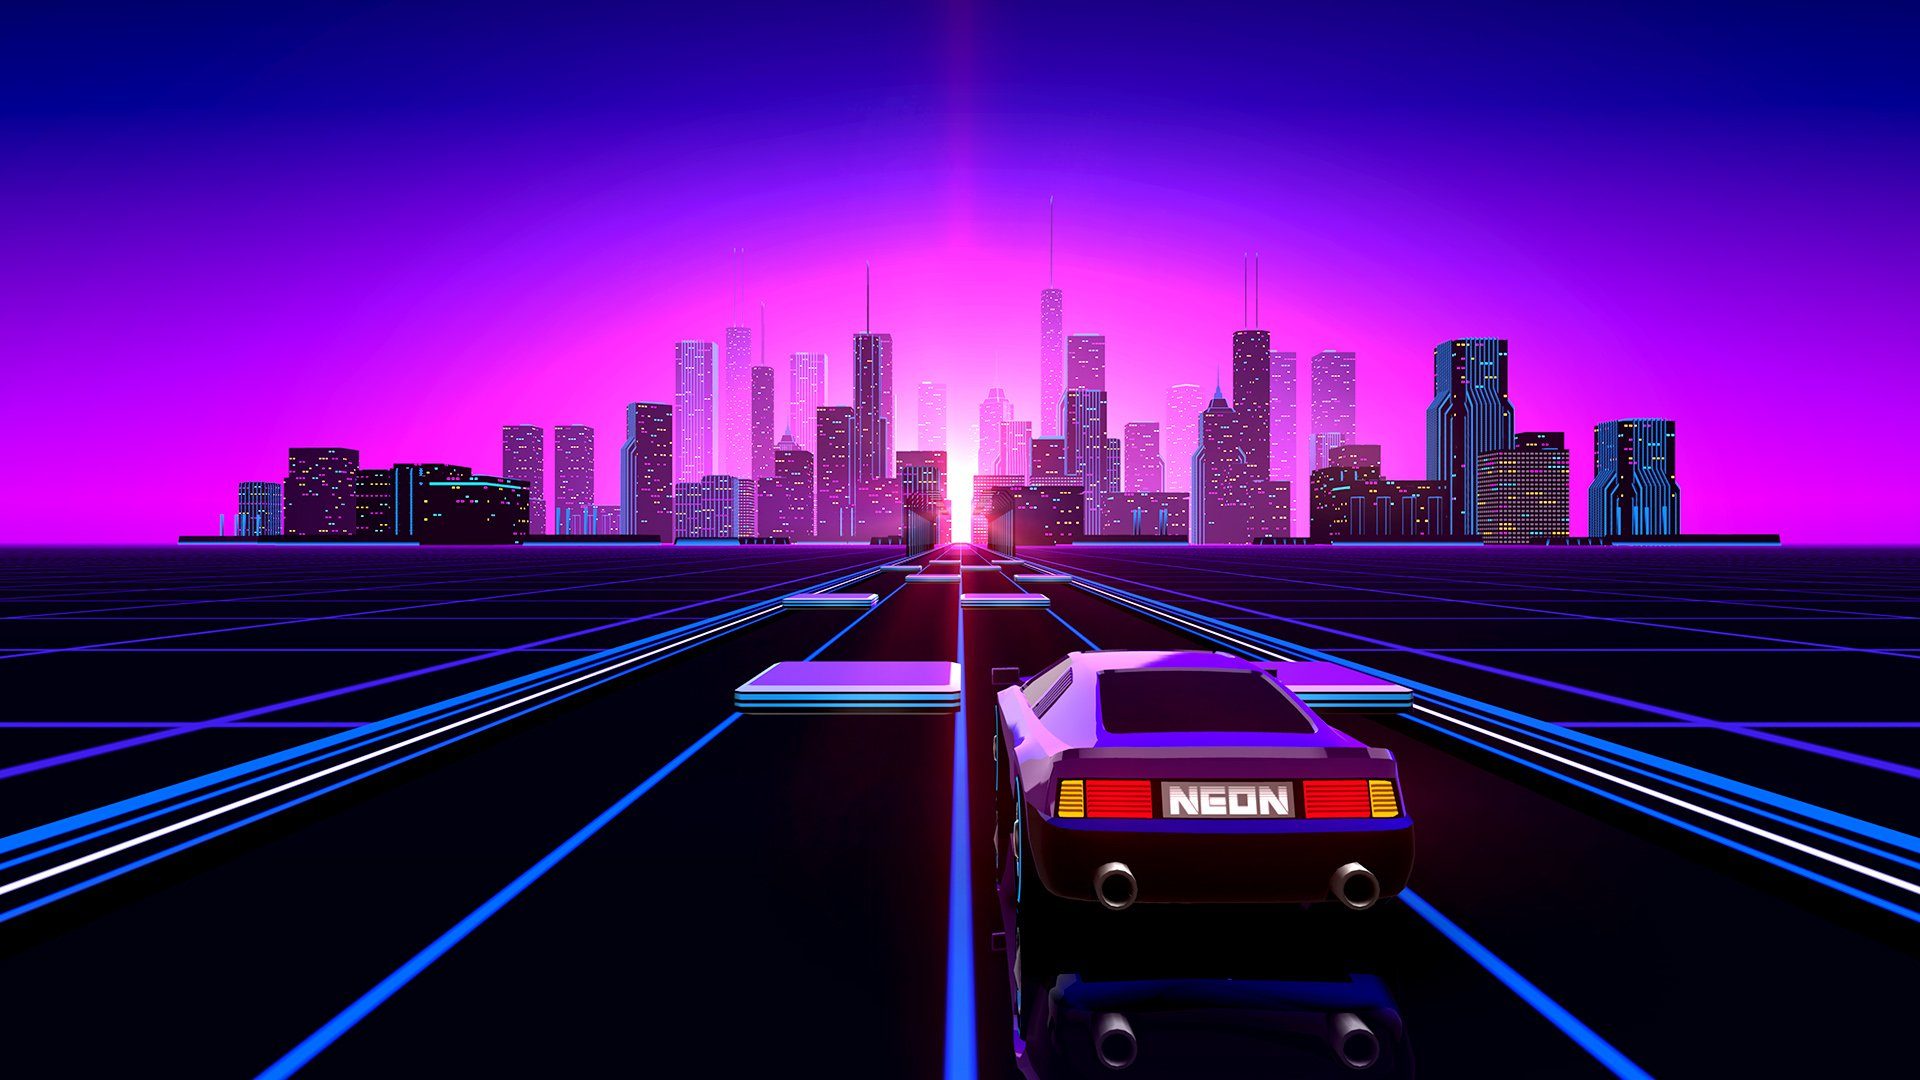 118 Retro Wave HD Wallpapers Background Images 1920x1080